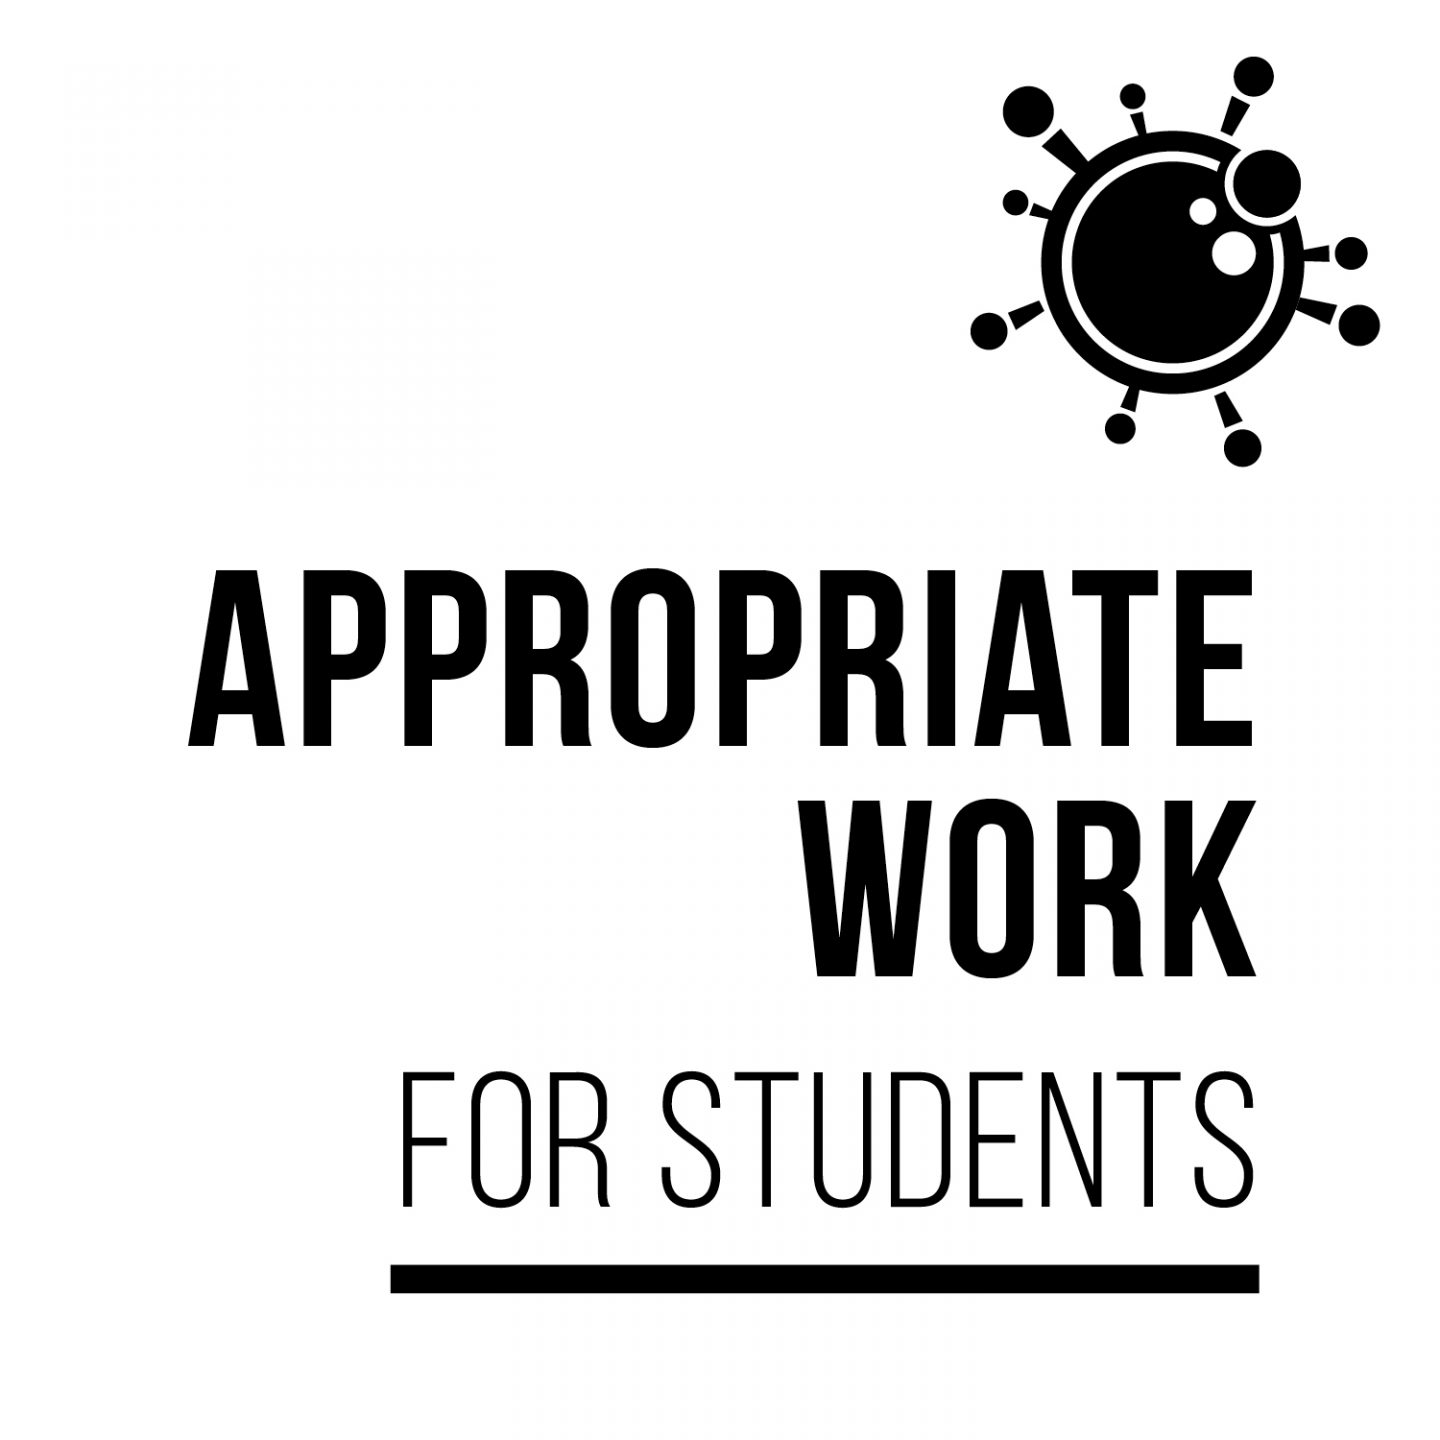 Appropriate work for students